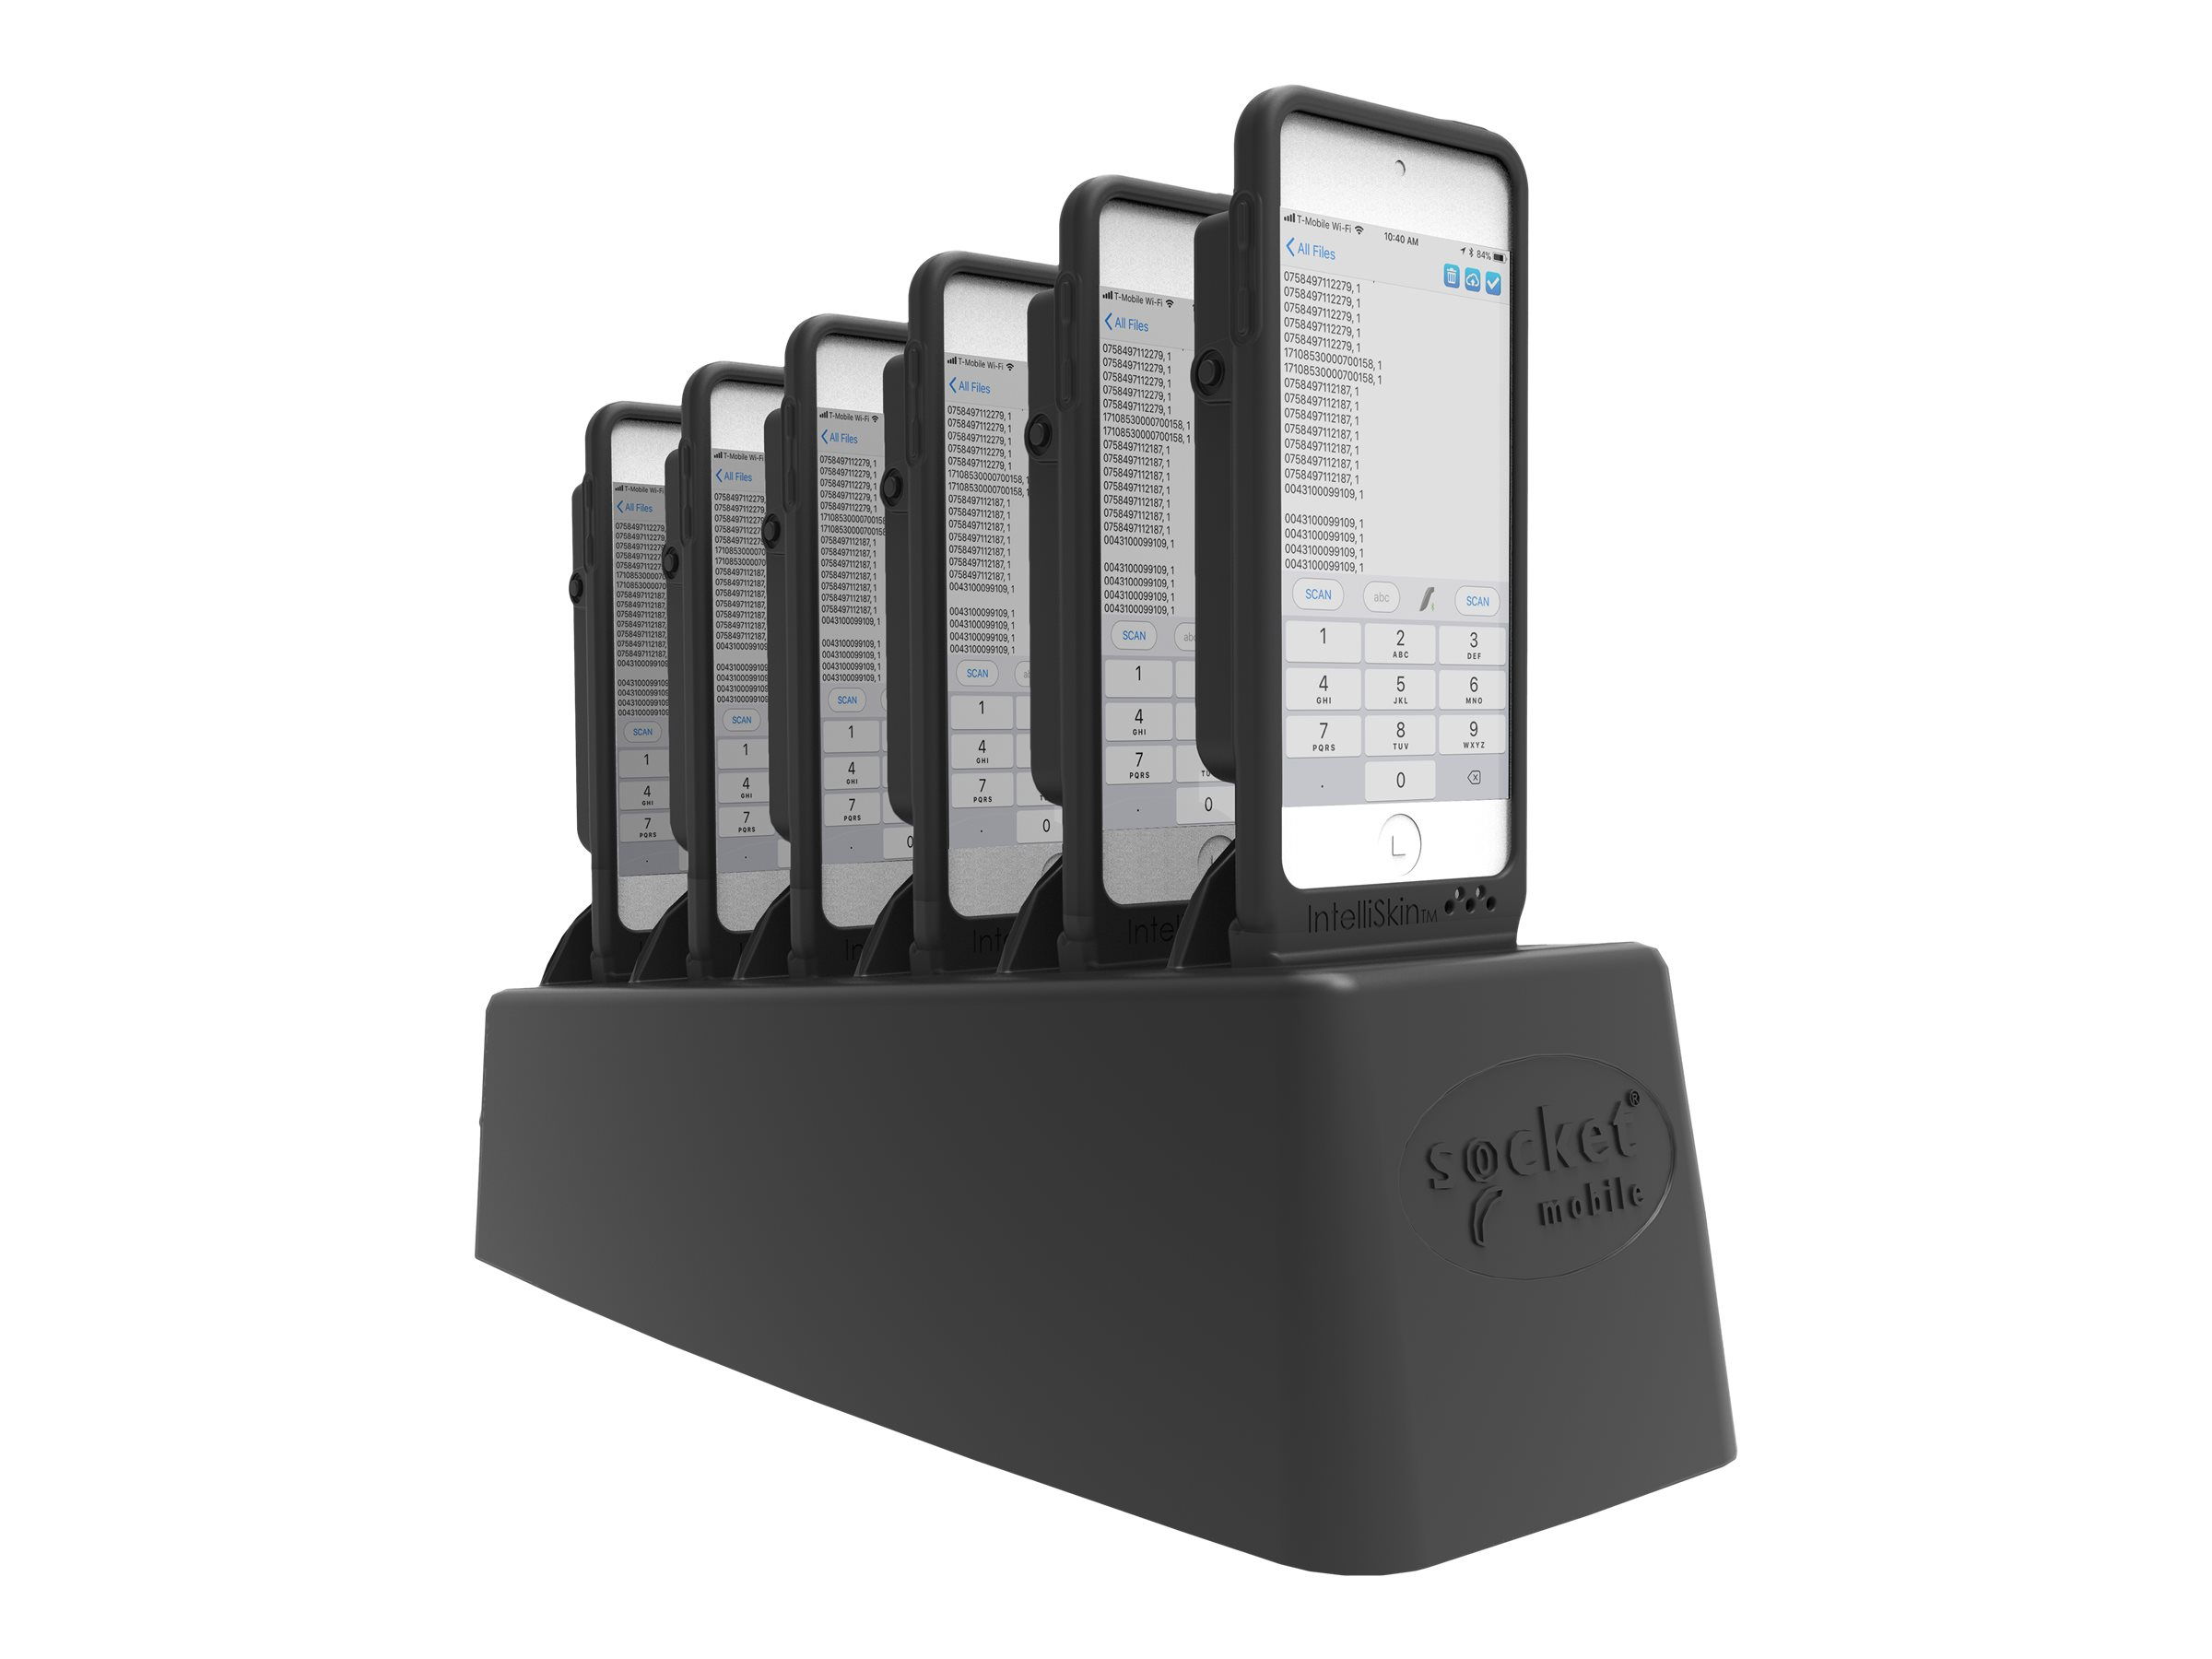 DuraSled DS840 - With 6 Bay Charger - Barcode-Scanner - Begleiter - Linear-Imager - decodiert